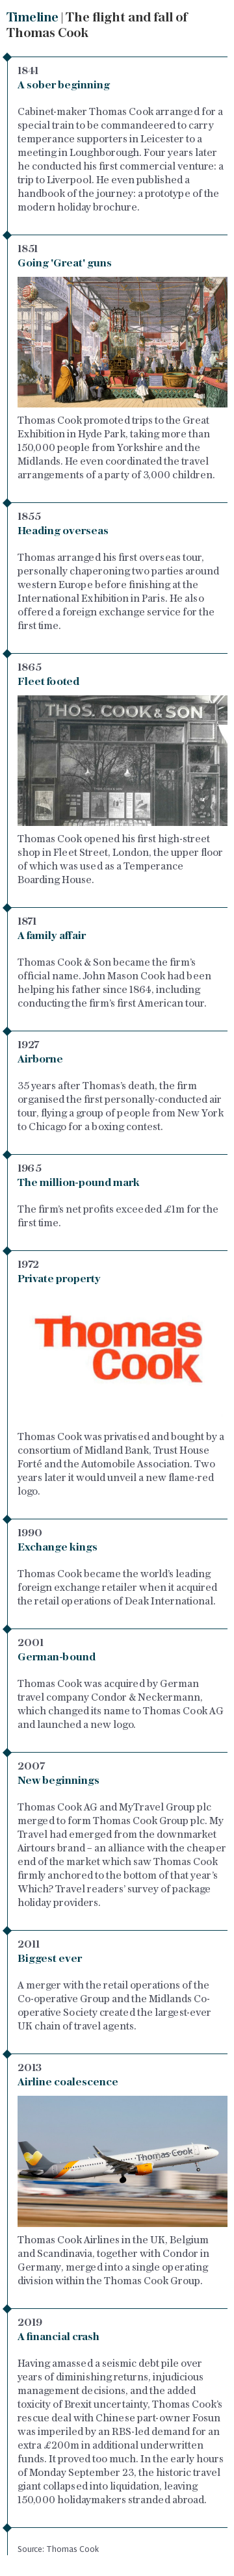 Thomas Cook timeline